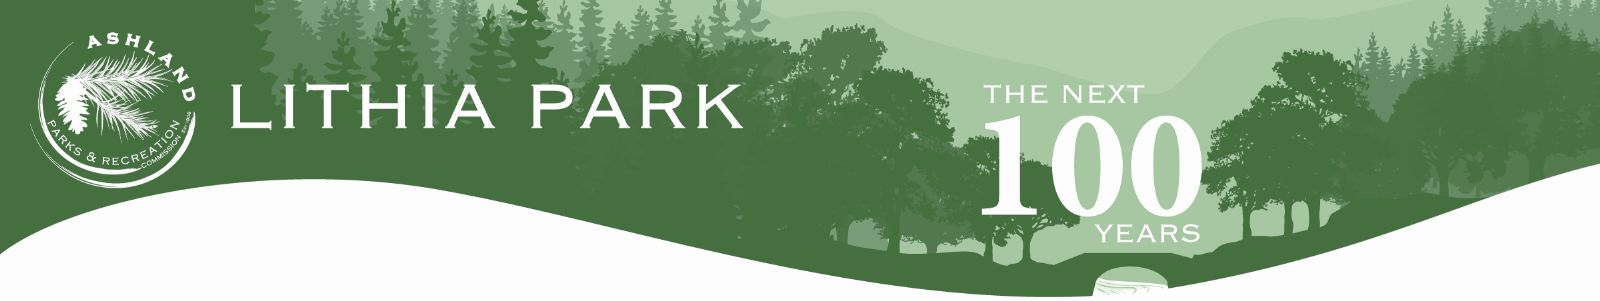 Lithia Park Master Plan - The Next 100 Years